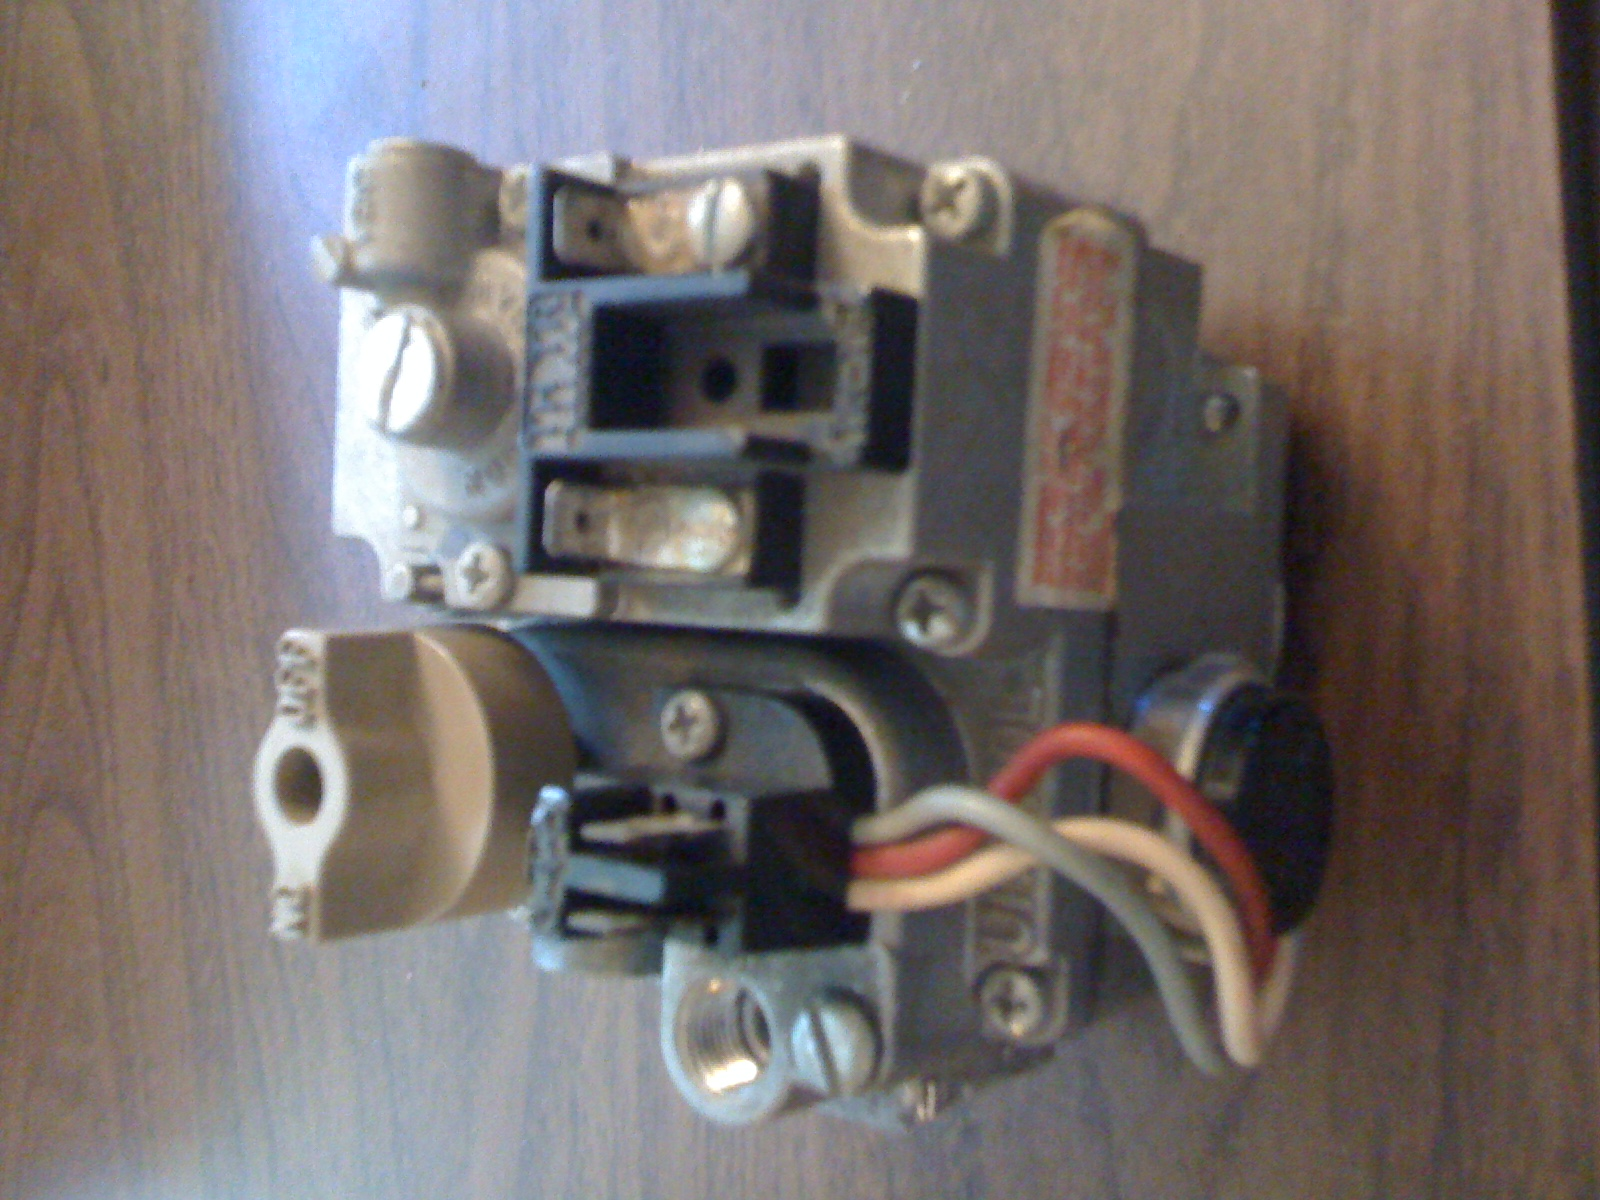 Old 1975 House Gas Furnace Valve Robertshaw Unitrol 7000 Bker Heat Pump Thermostat Wiring Diagram S7c